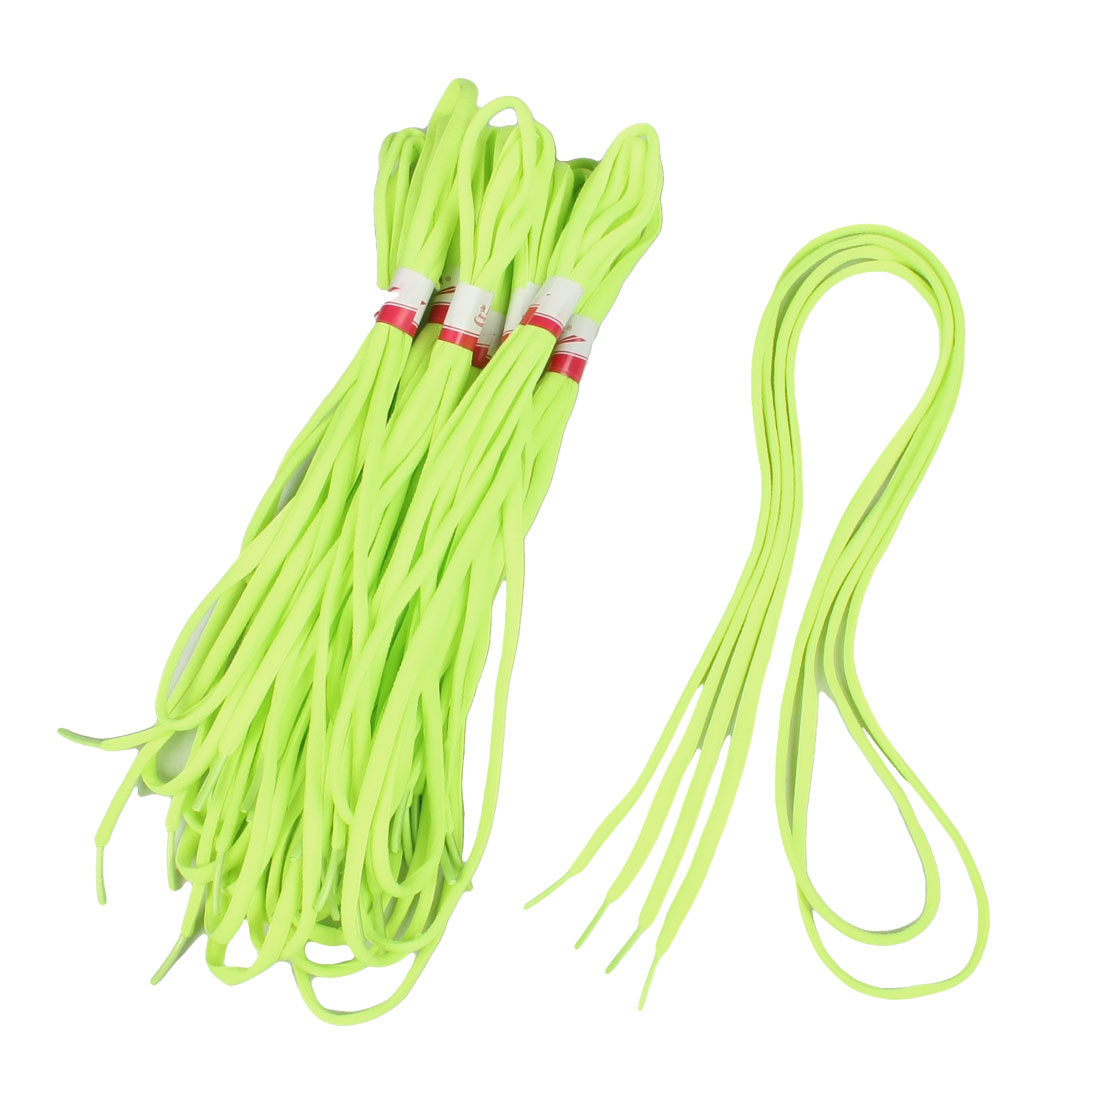 10 Pair 120cm Length Yellowgreen Round Sport Shoes String Shoelaces